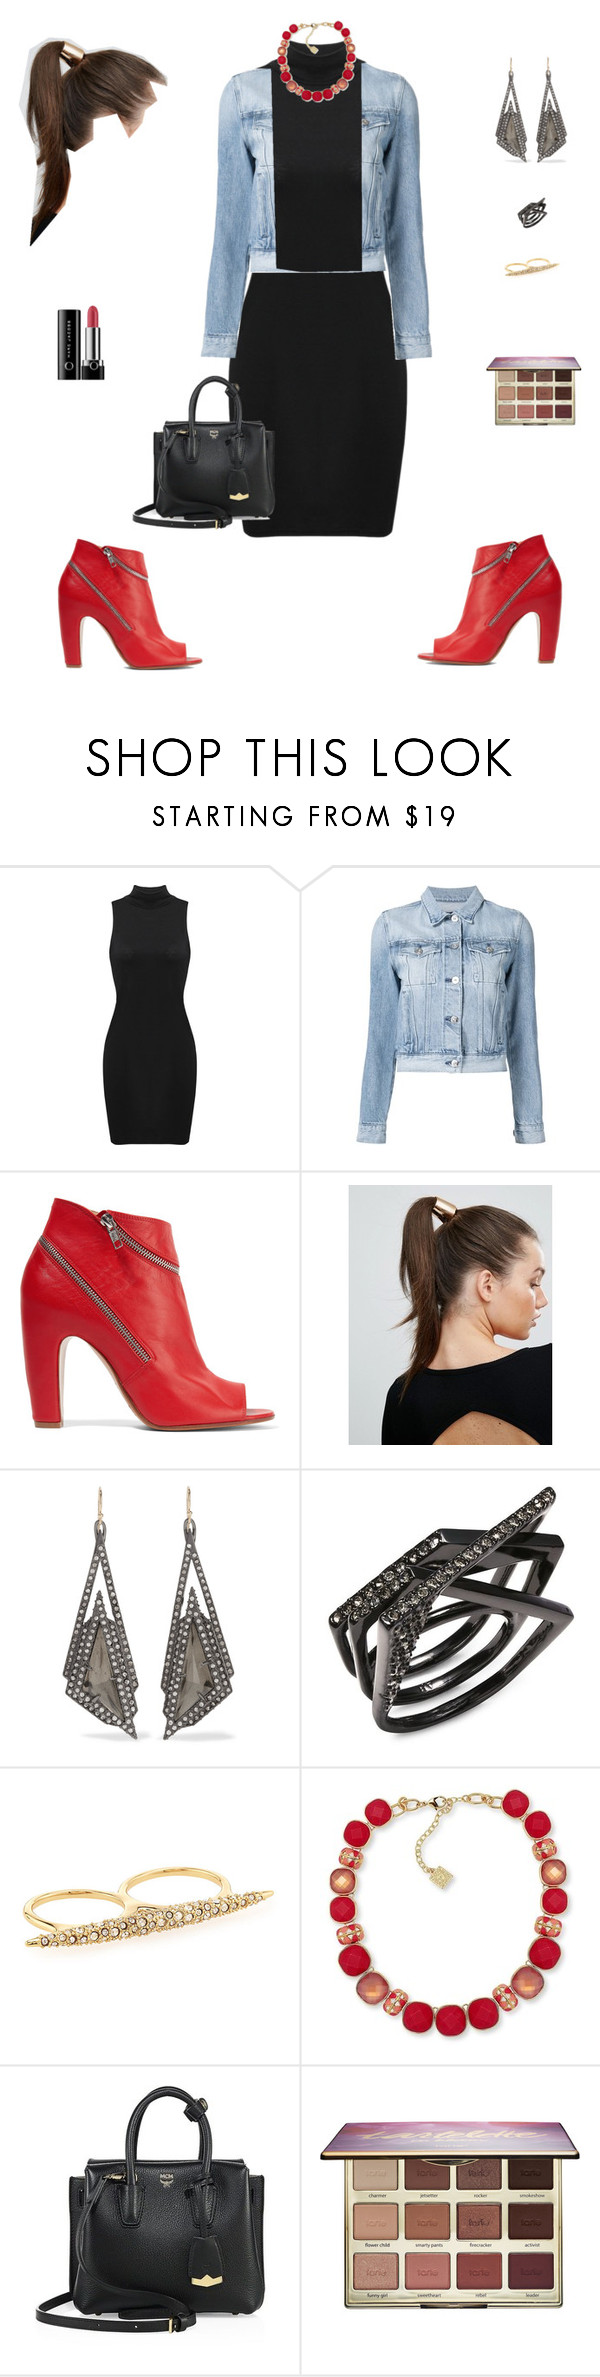 """cap #04"" by natashaaveiga ❤ liked on Polyvore featuring 3x1, Maison Margiela, Johnny Loves Rosie, Alexis Bittar, Anne Klein, MCM, tarte and Marc Jacobs"